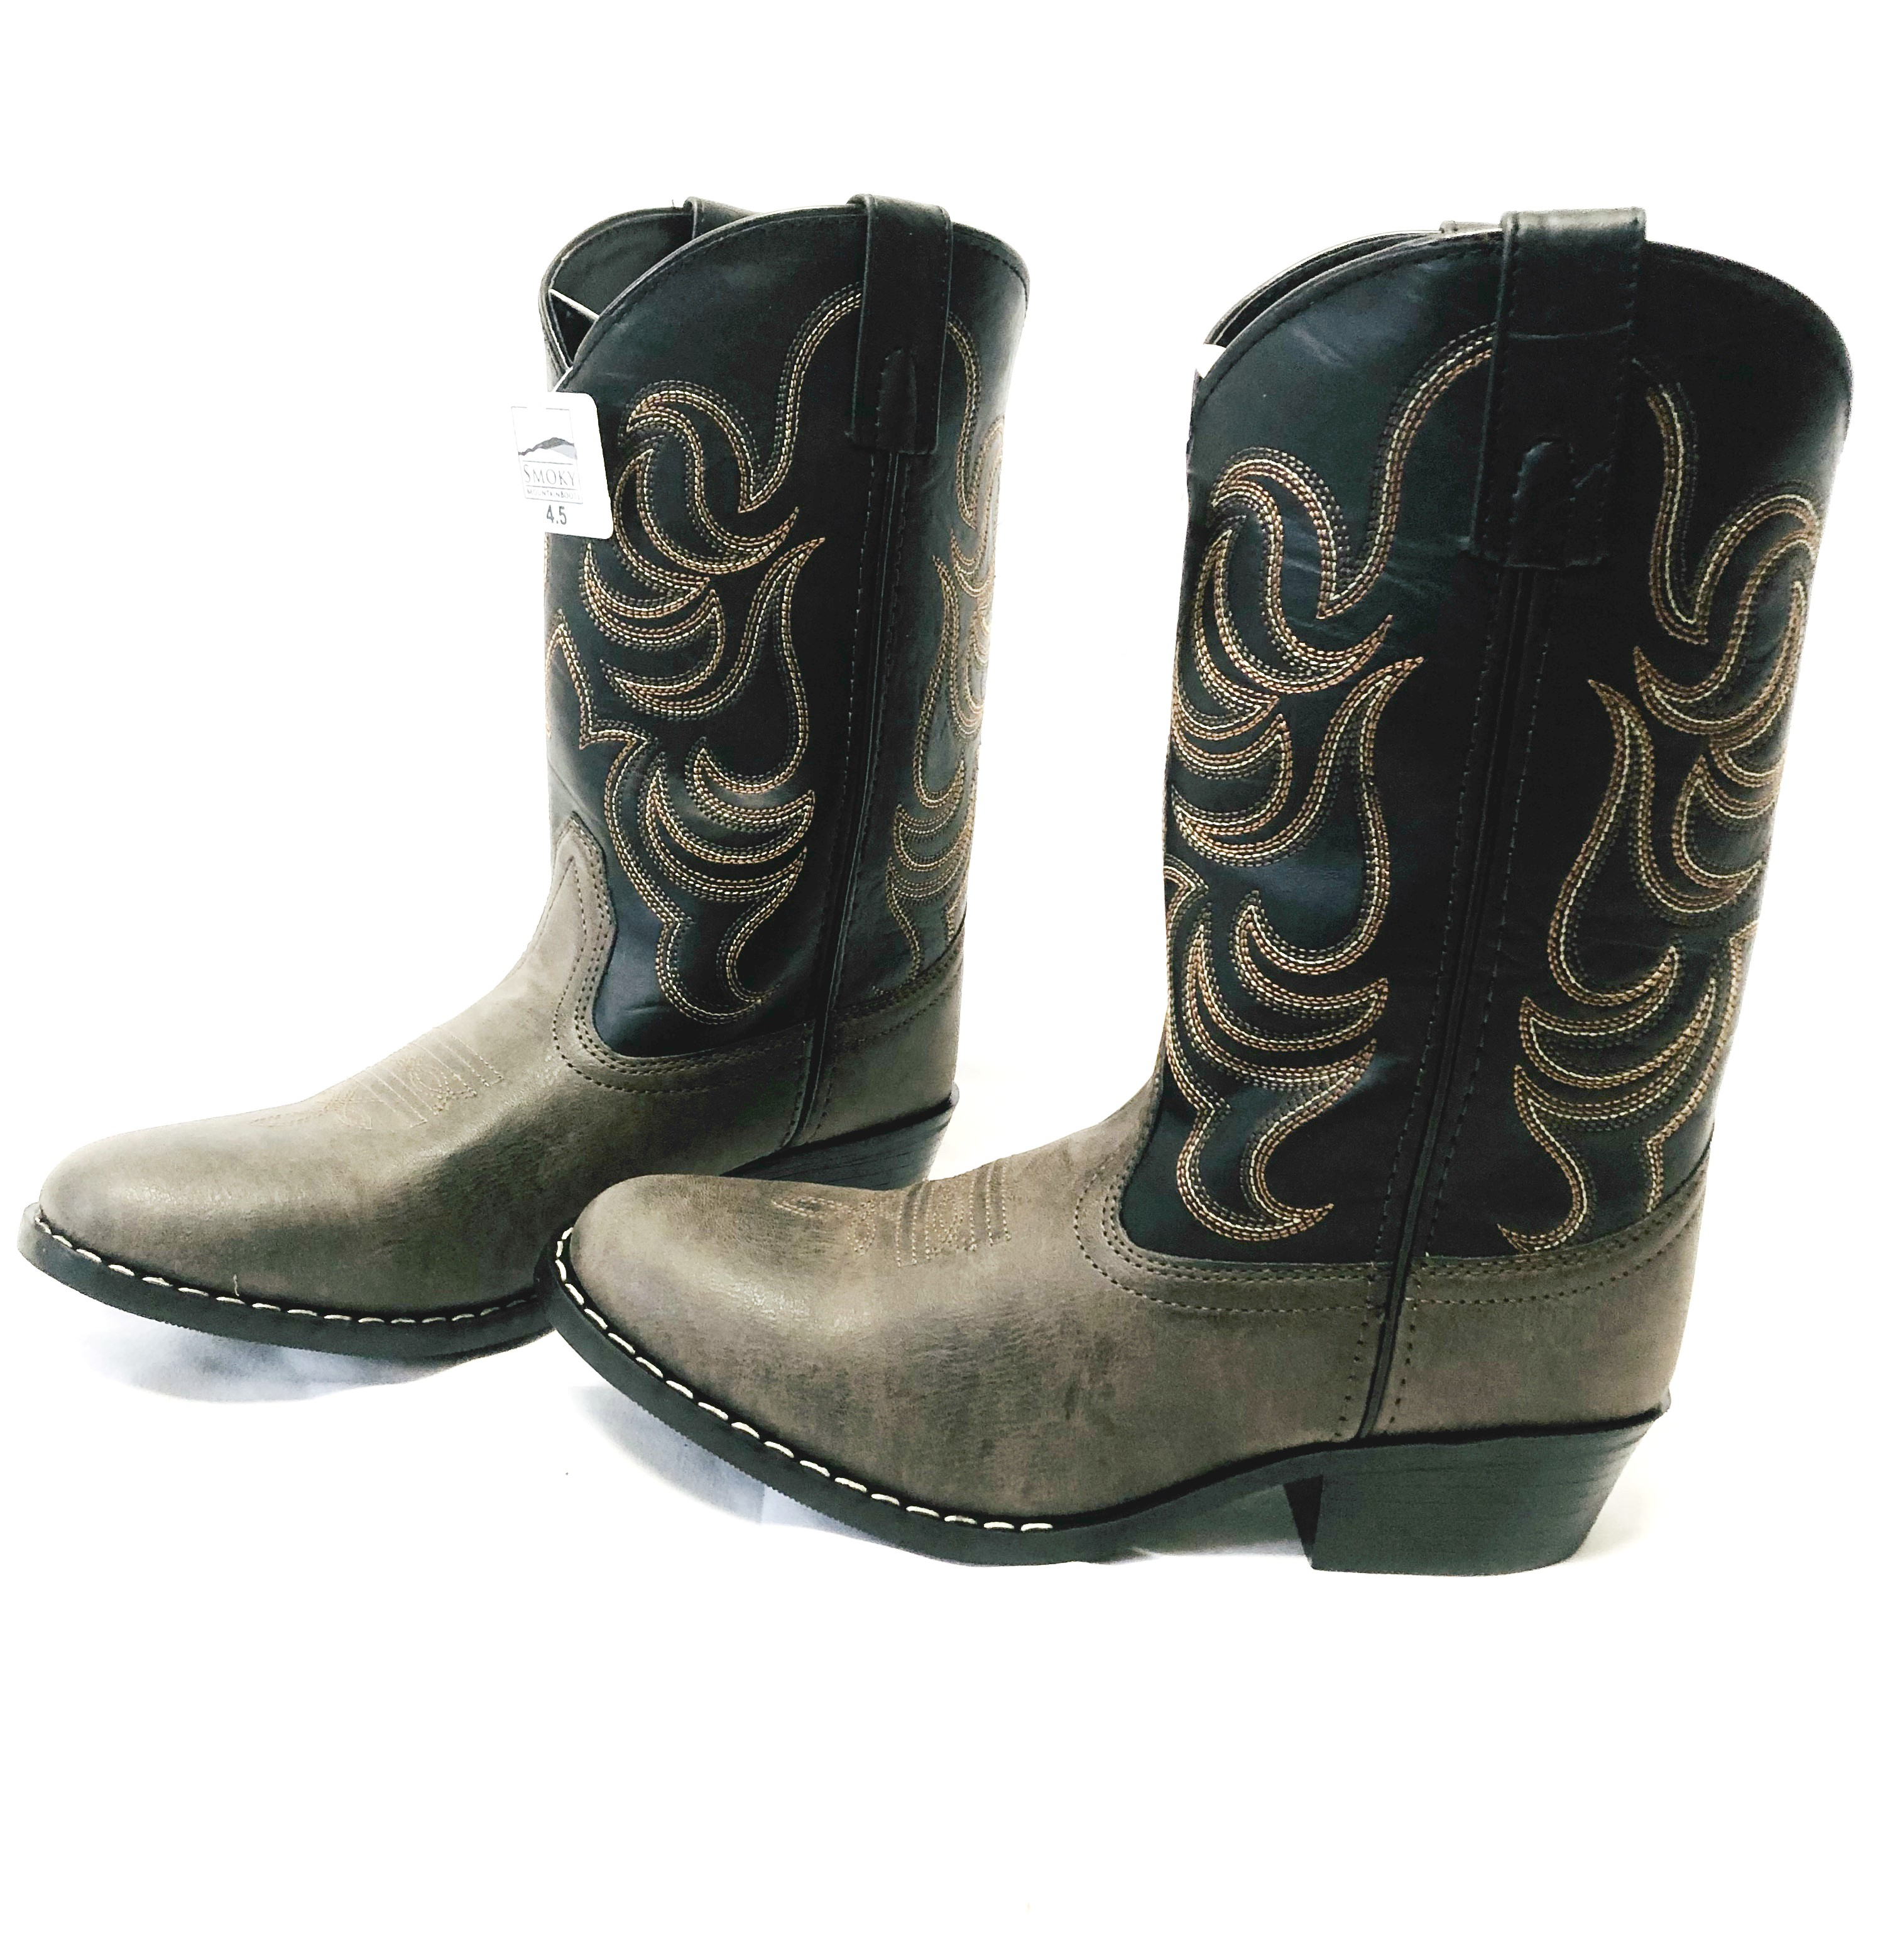 2f616e53500 Details about Smoky Mountain Youth Boys Monterey Western Cowboy Boots Brown  and Black Size 4.5